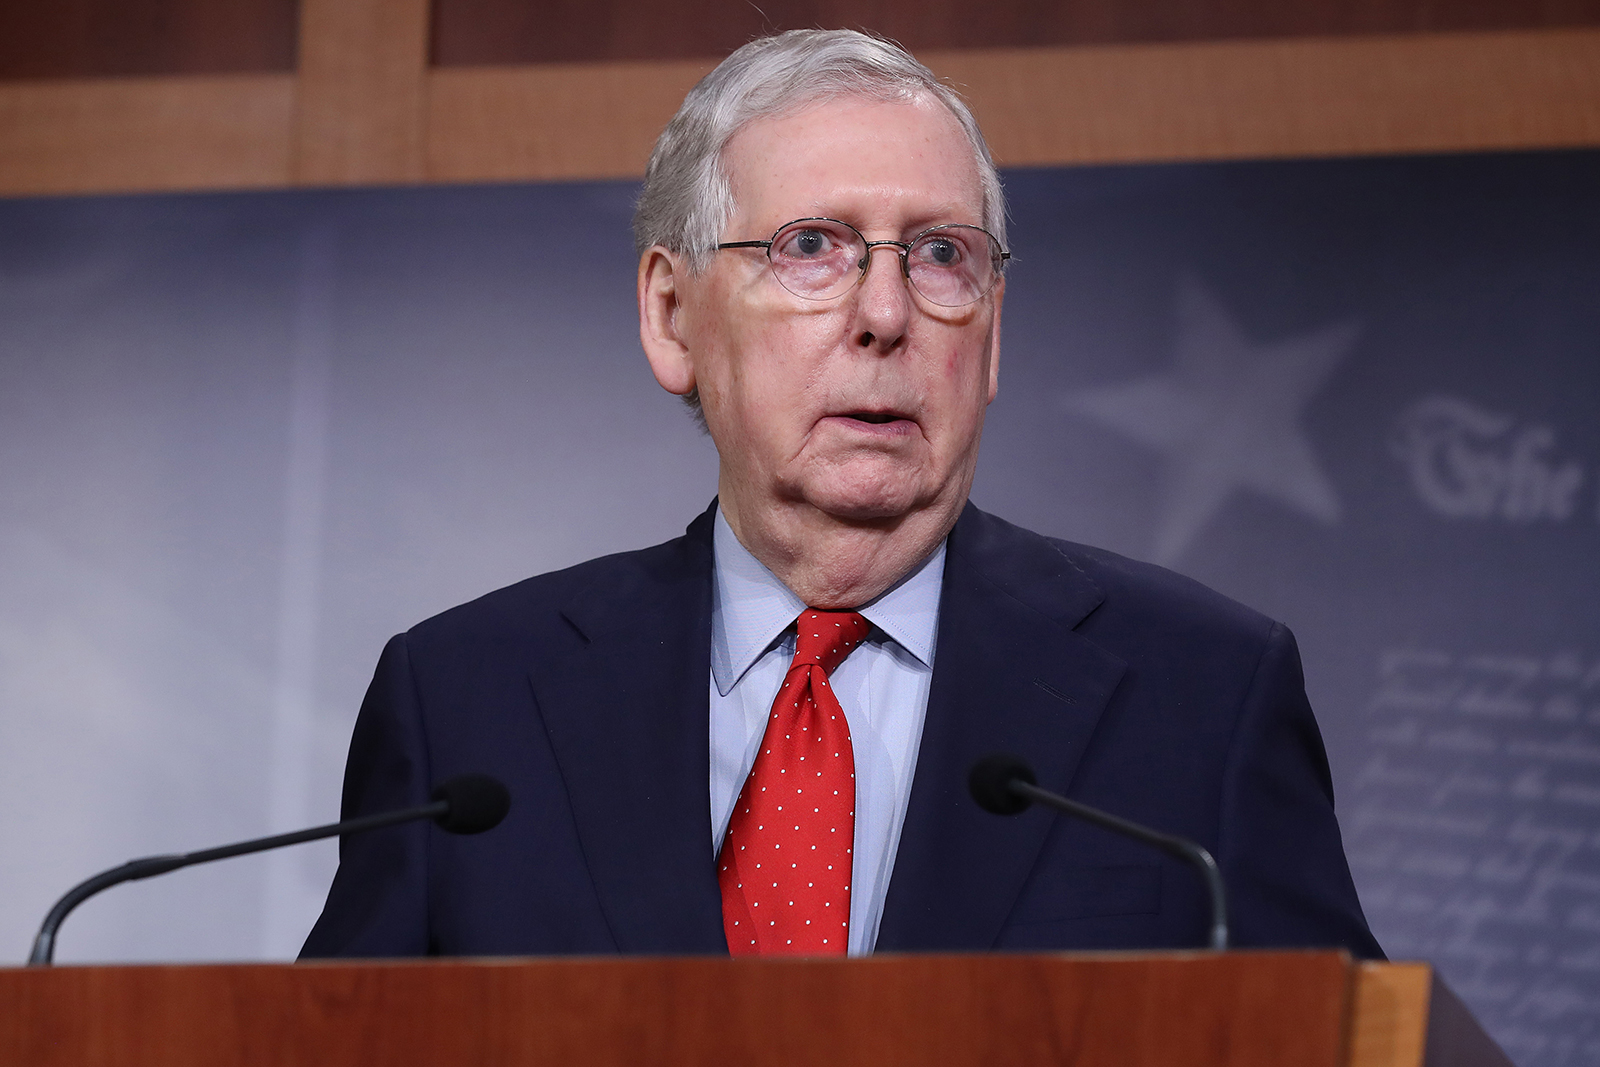 Senate Majority Leader Mitch McConnell speaks during a news briefing at the U.S. Capitol April 21, in Washington, DC.